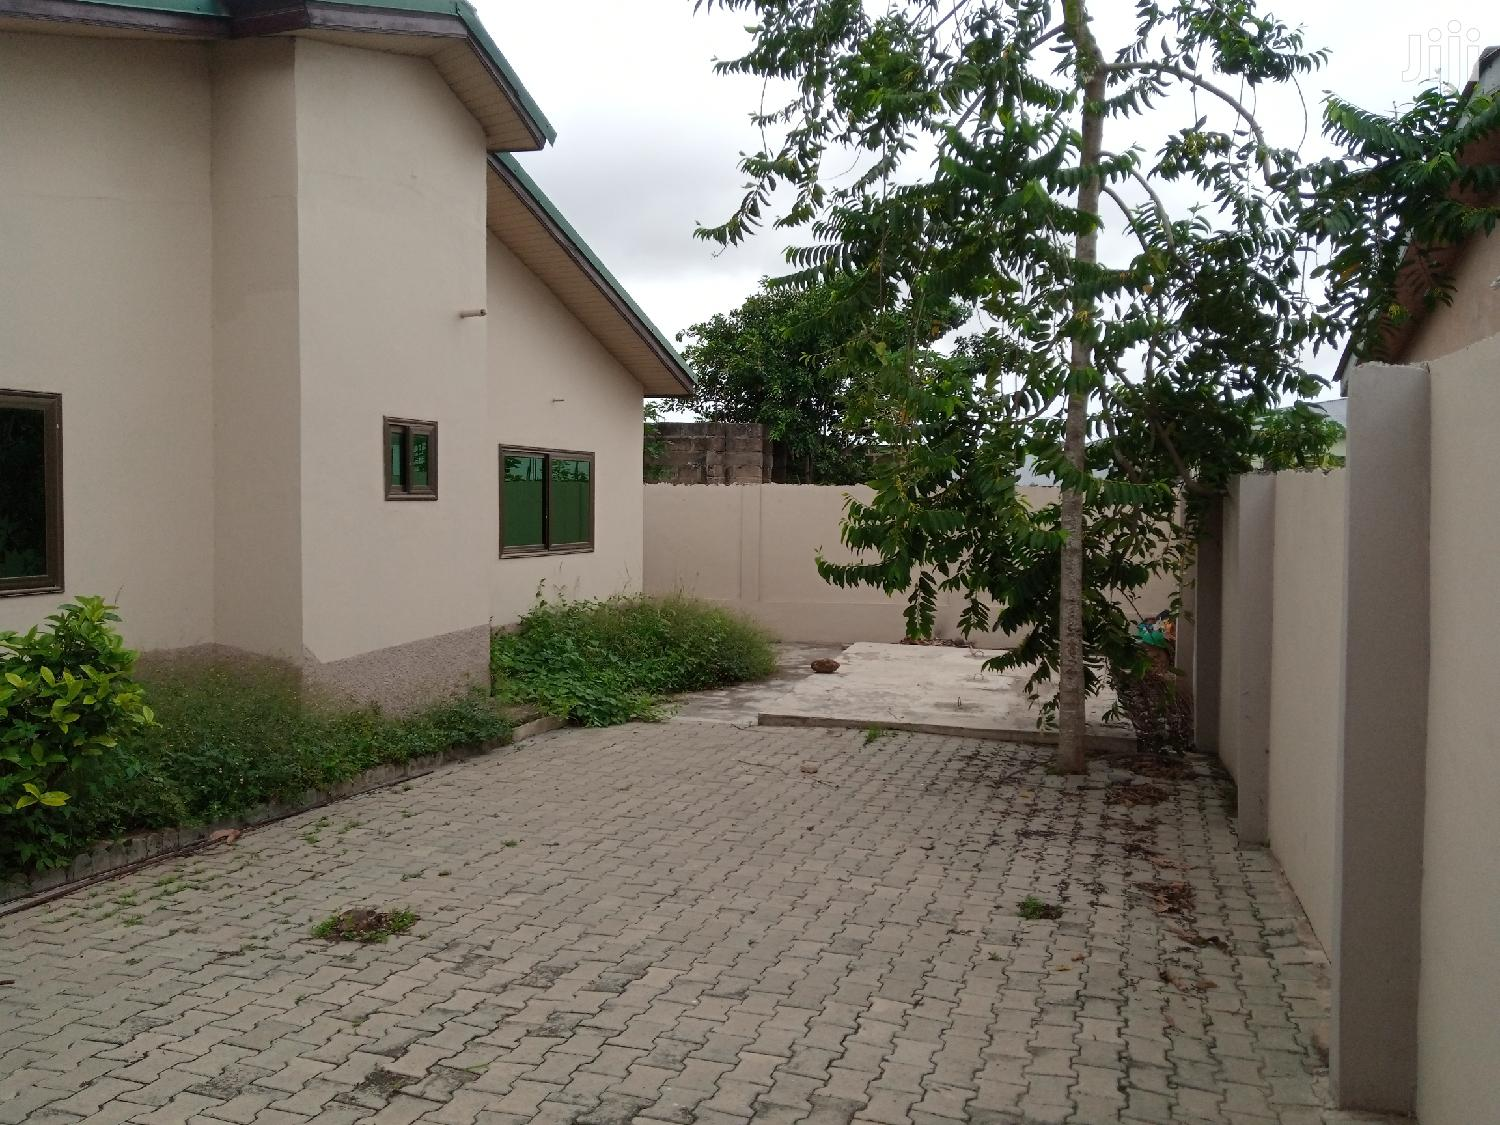 4 Bedroom House For Rent | Houses & Apartments For Rent for sale in Awutu Senya East Municipal, Central Region, Ghana